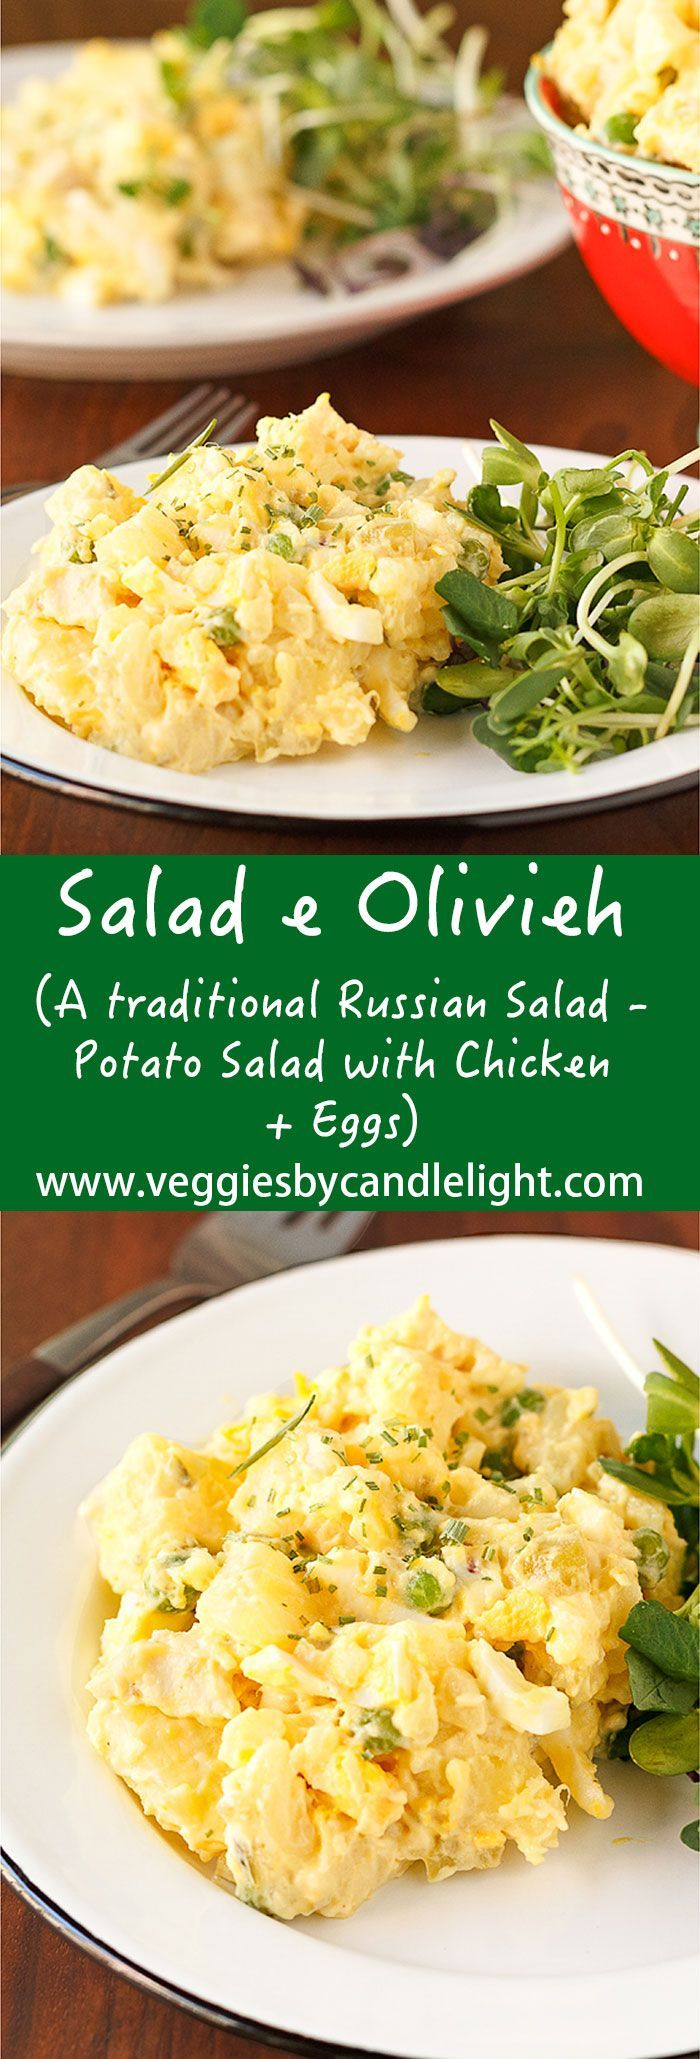 Salad e Olivieh (Potato Salad with Chicken + Eggs) - A traditional salad in Russian cuisine .. with a creamy goodness from mashed potatoes, umami from chicken, & brightness from tangy cornichons, lemon, & peas